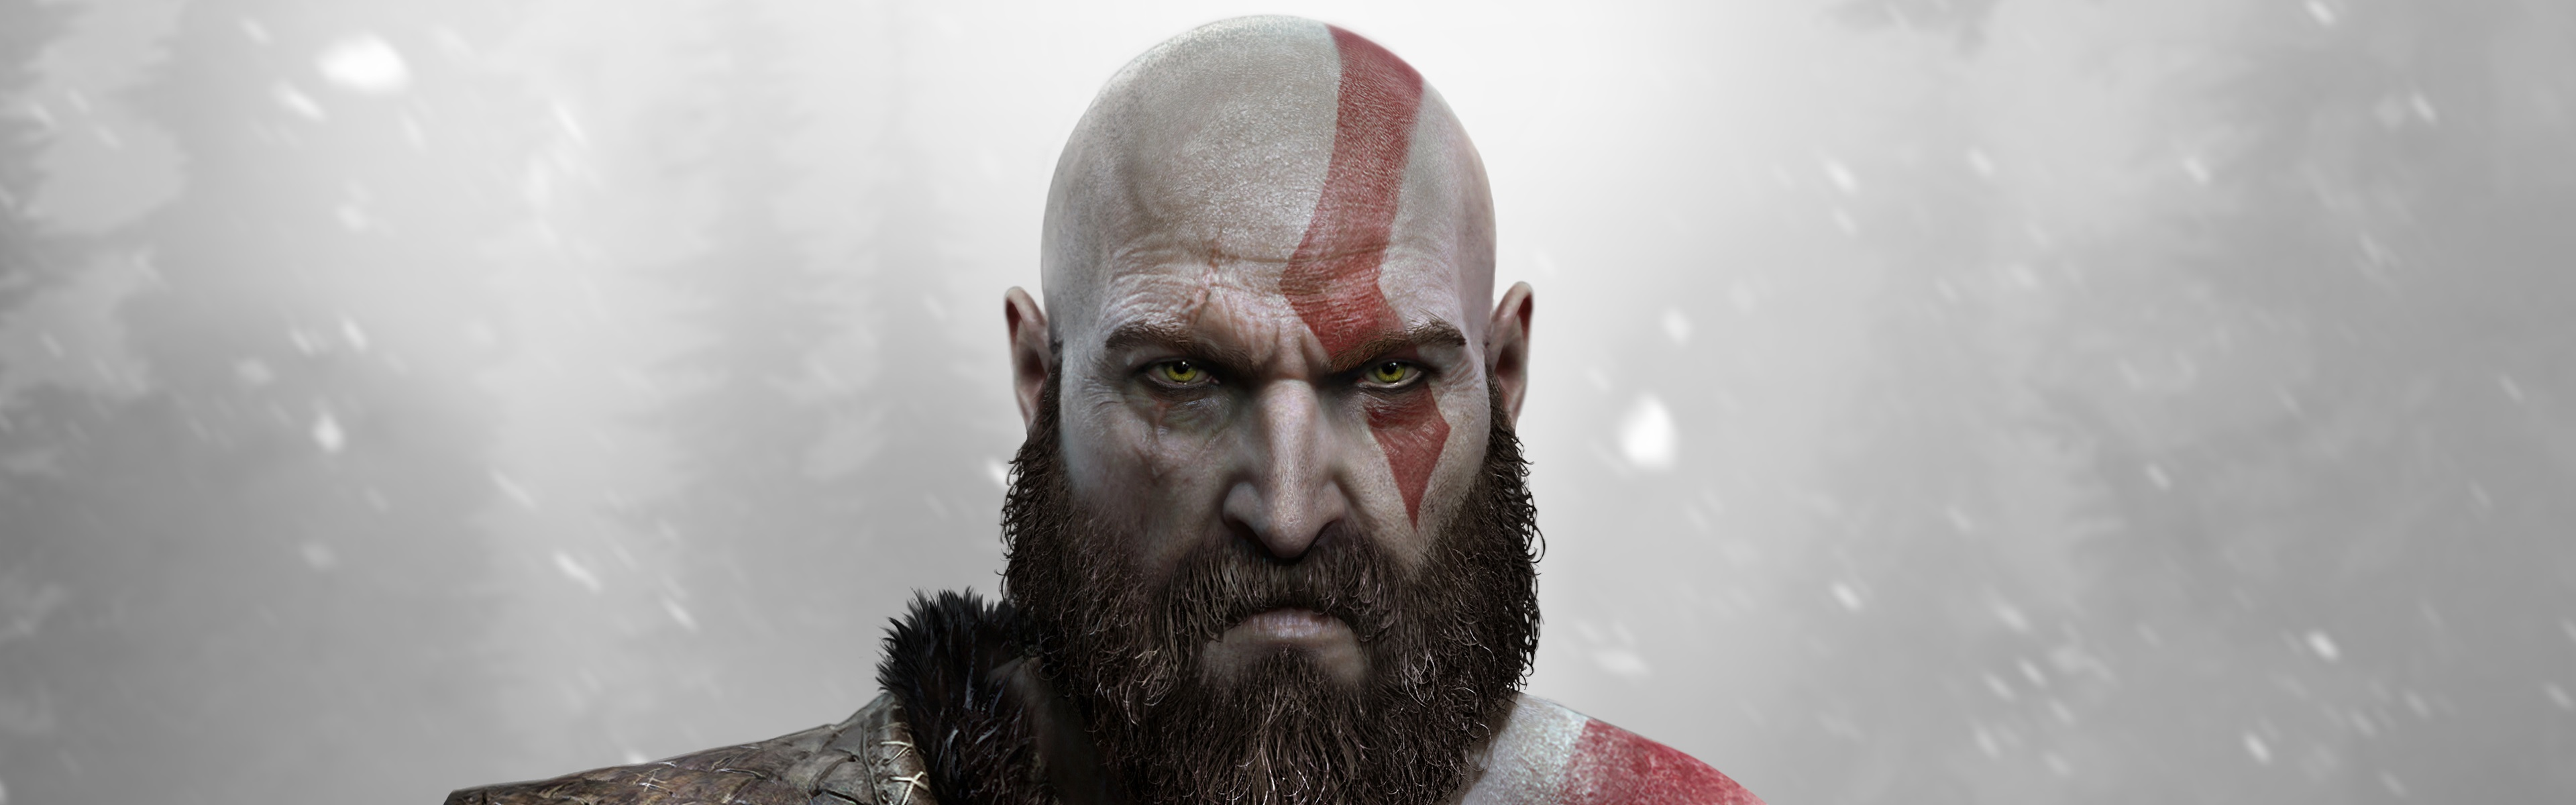 how to hold ps4 controller god of war